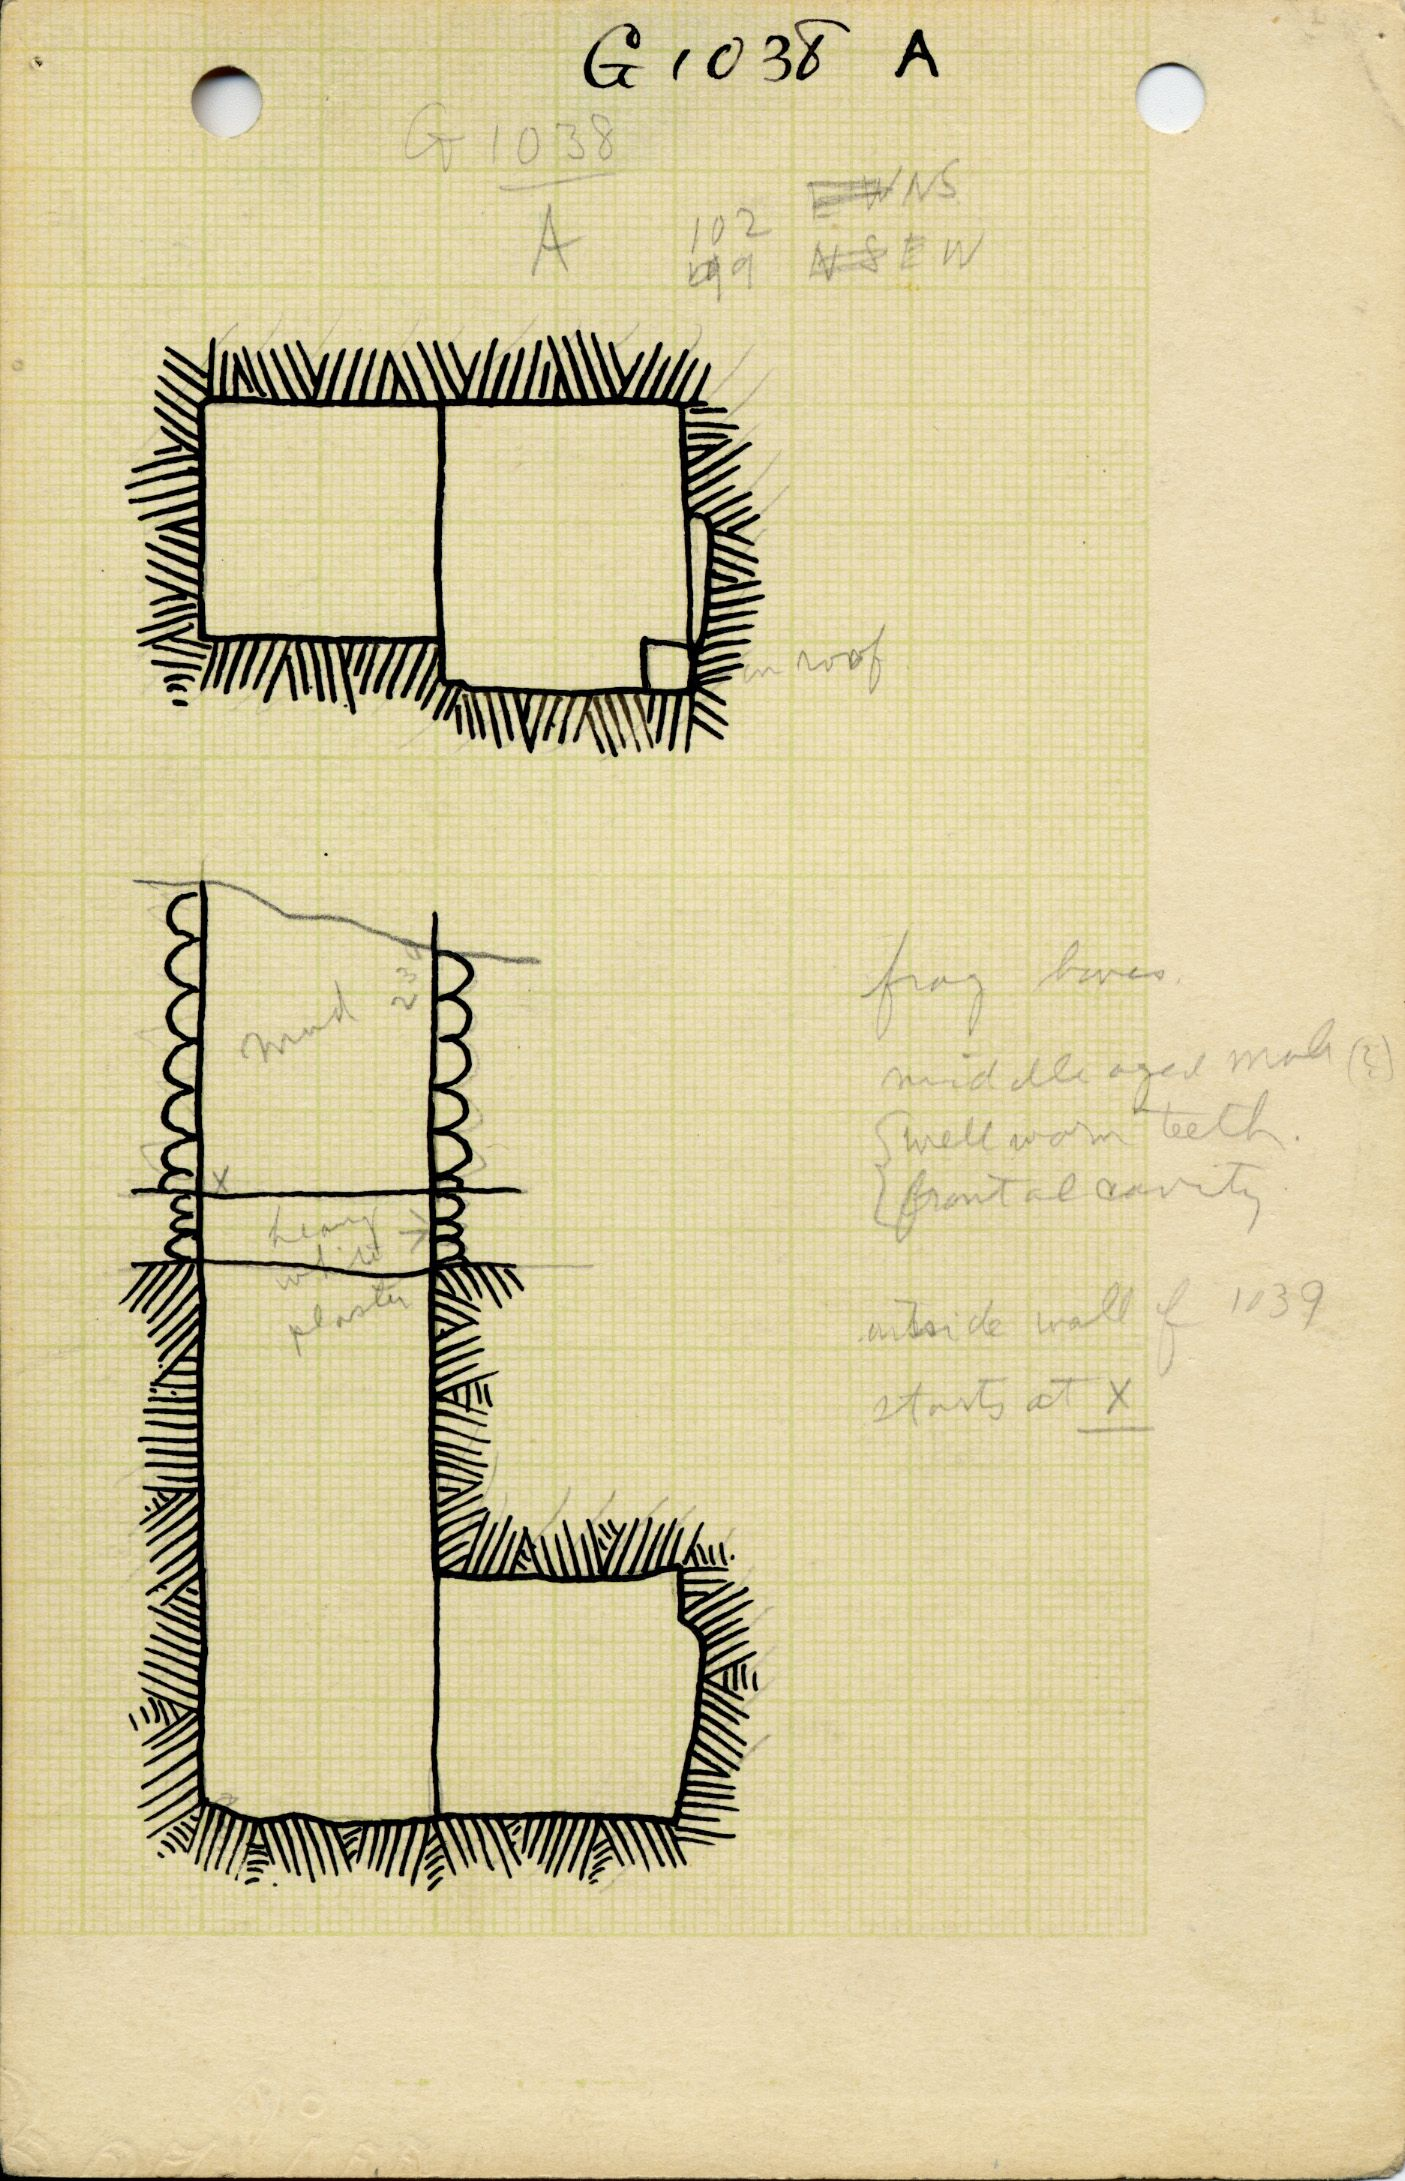 Maps and plans: G 1038, Shaft A